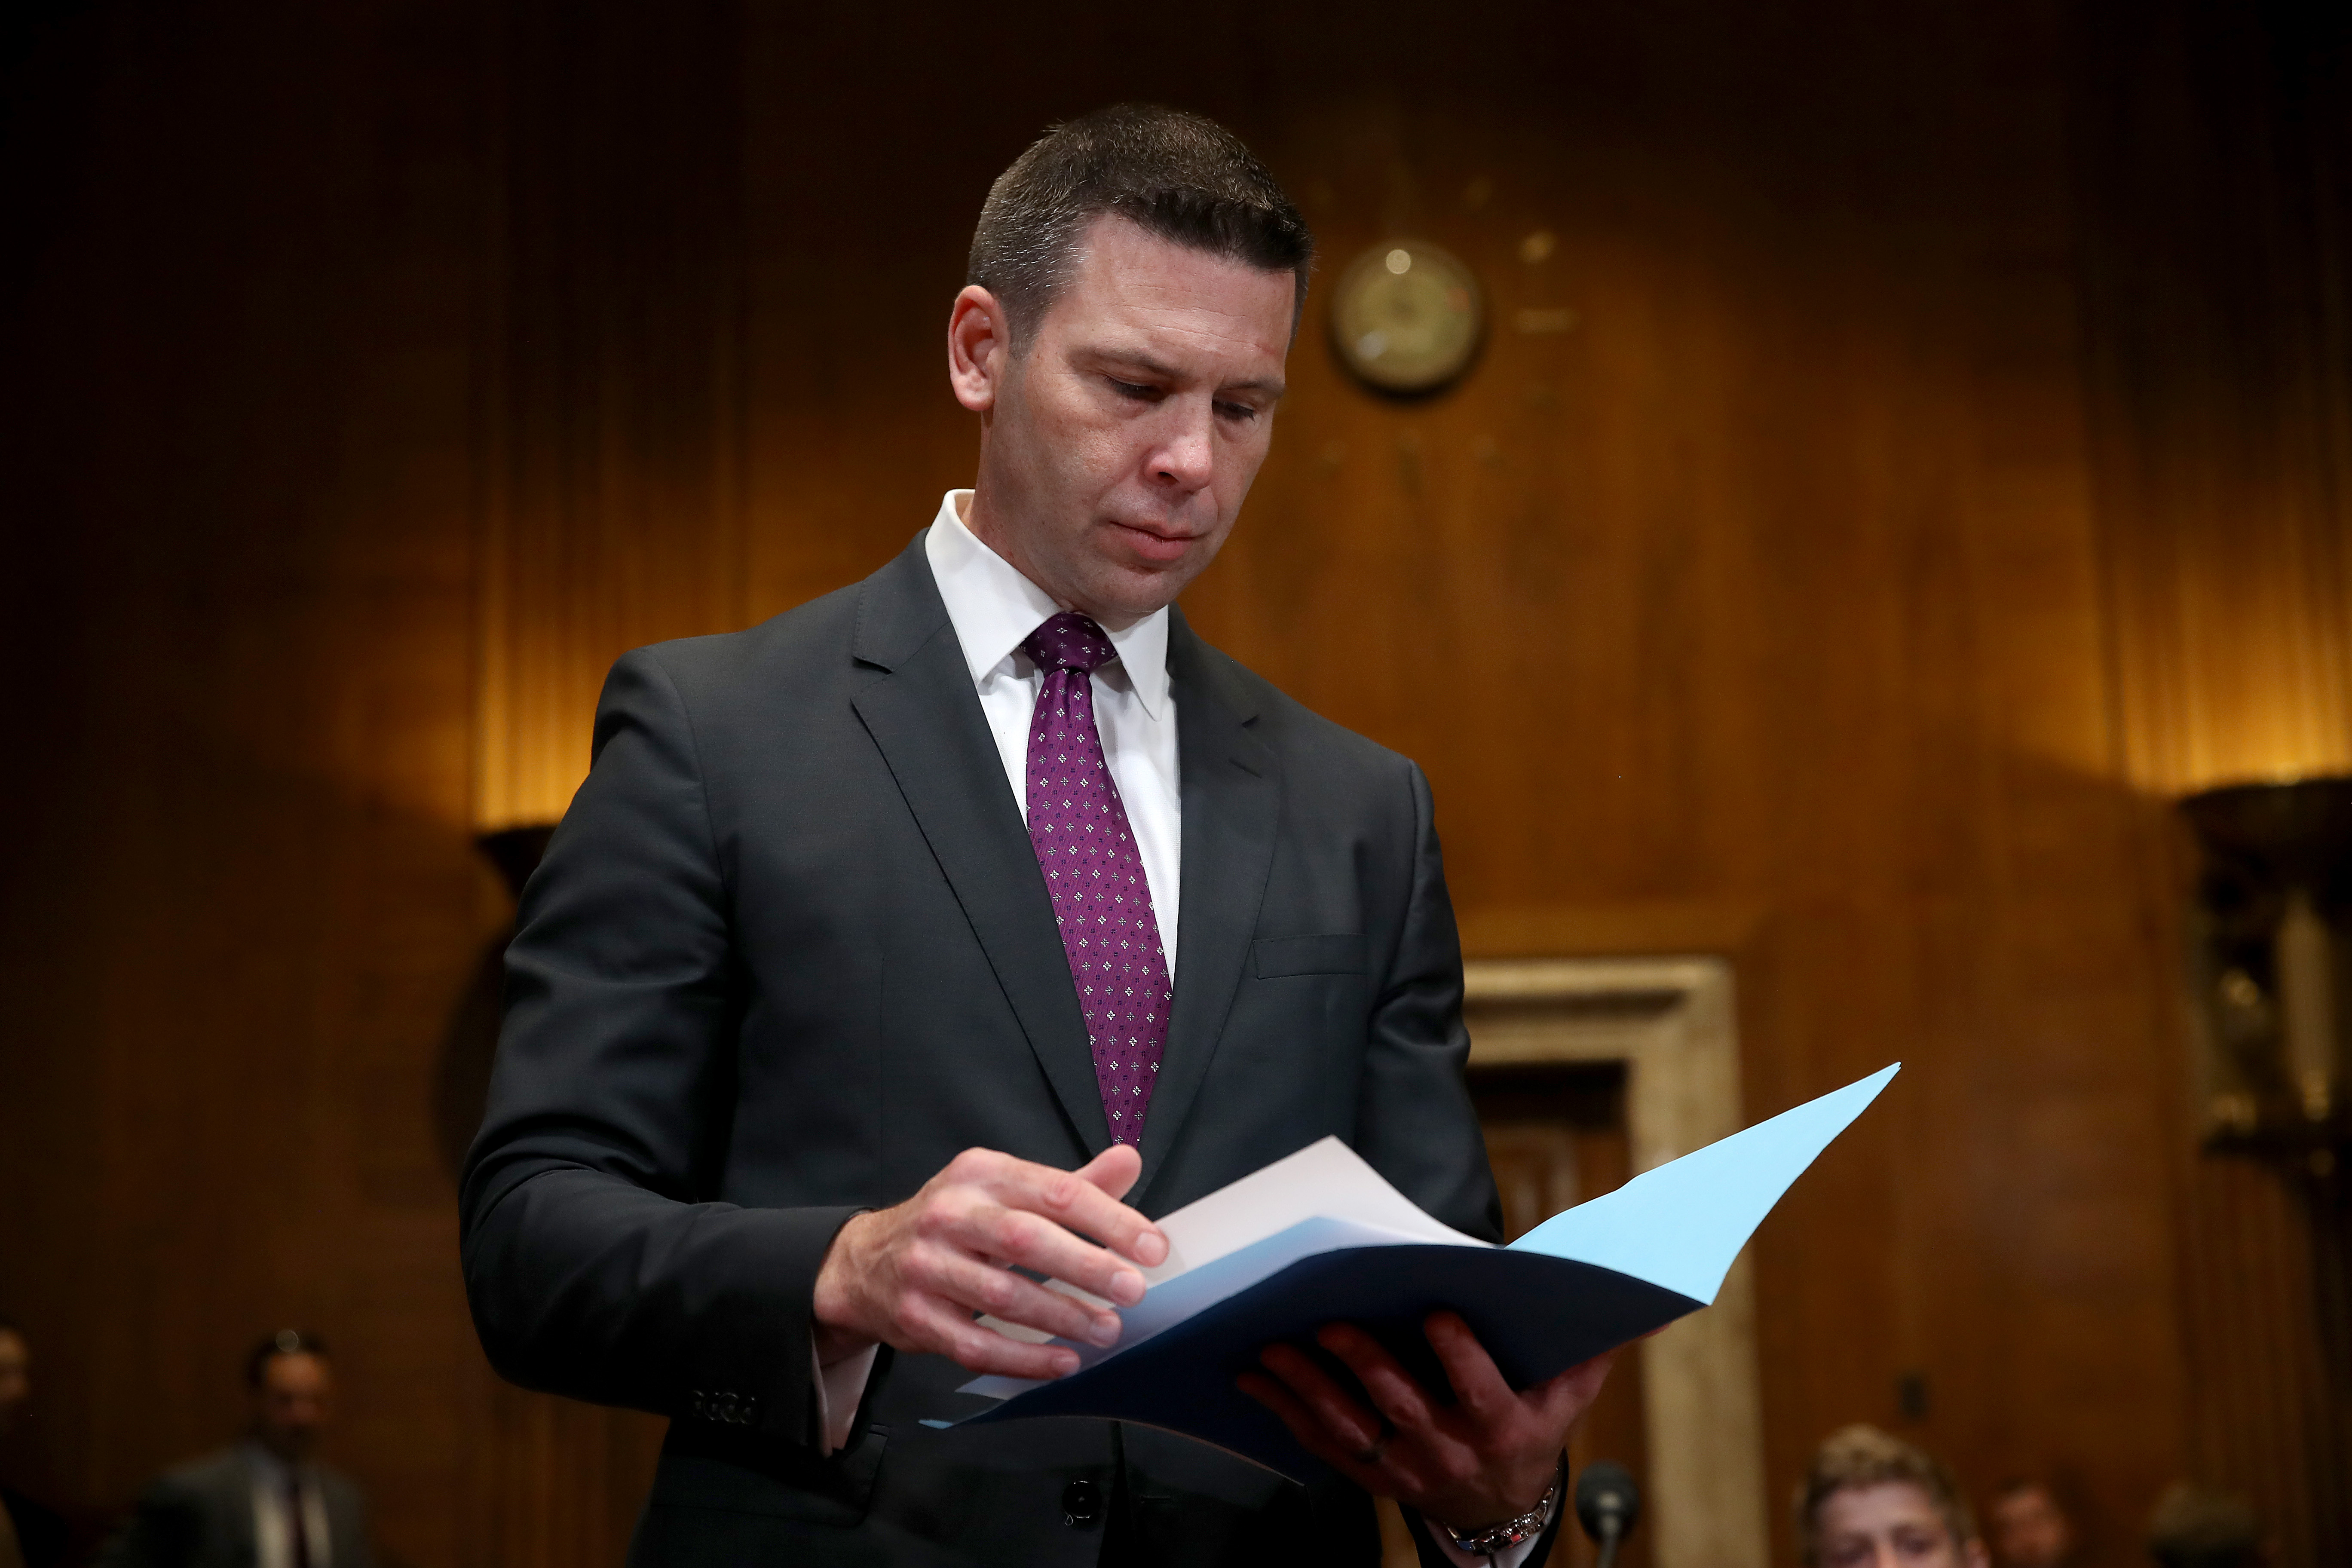 Acting Homeland Security Secretary Kevin McAleenan prepares to testify before the Senate Homeland Security Subcommittee May 2, 2019 in Washington, DC. (Win McNamee/Getty Images)